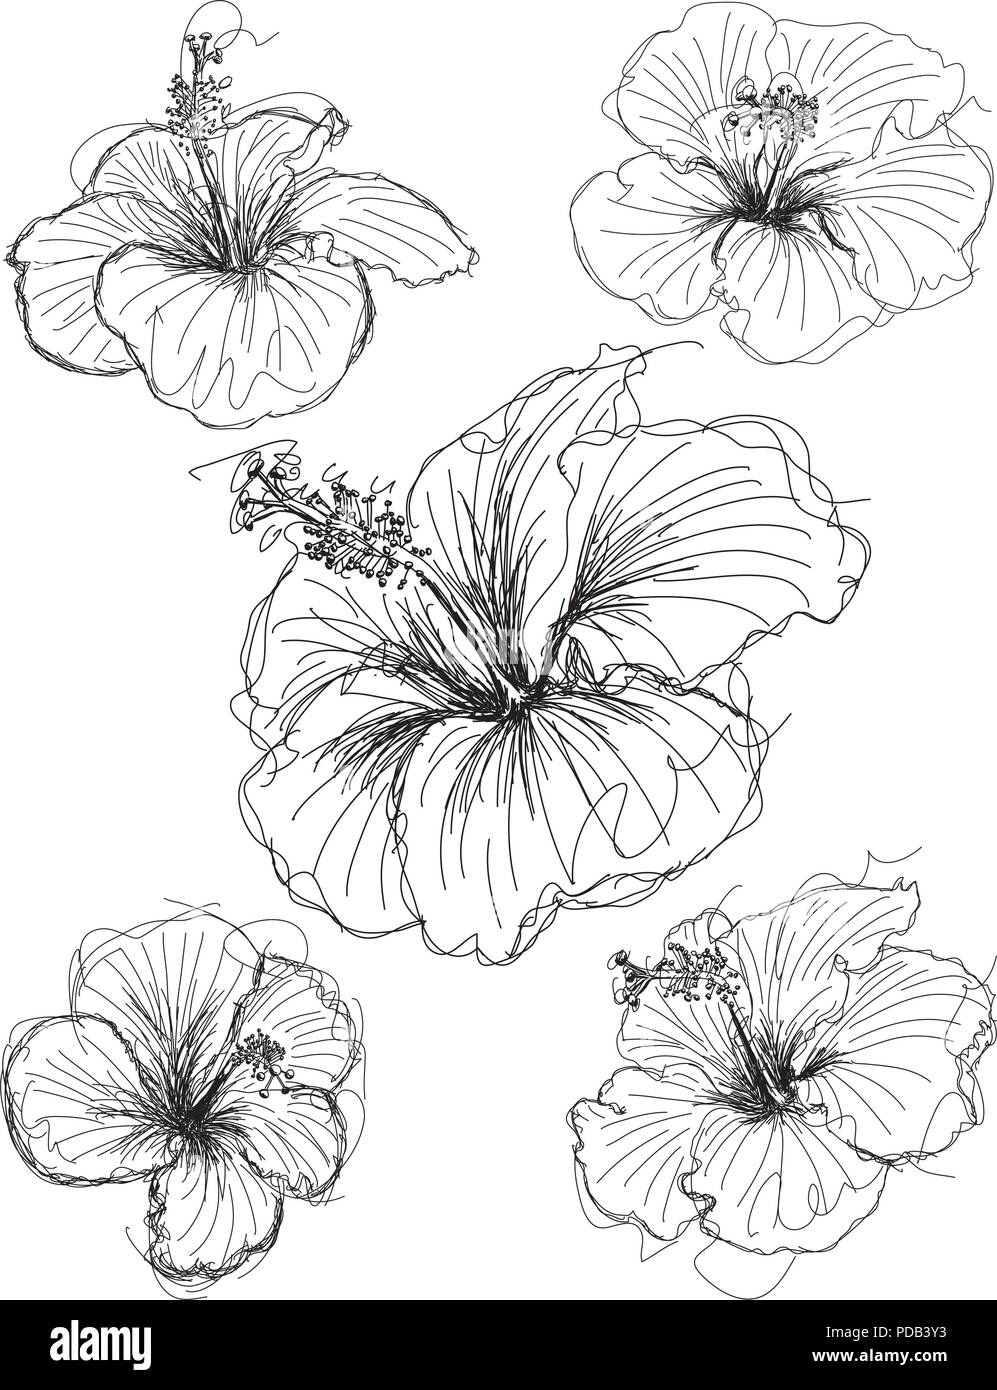 hibiscus flower sketches hand drawn hibiscus flower sketches stock